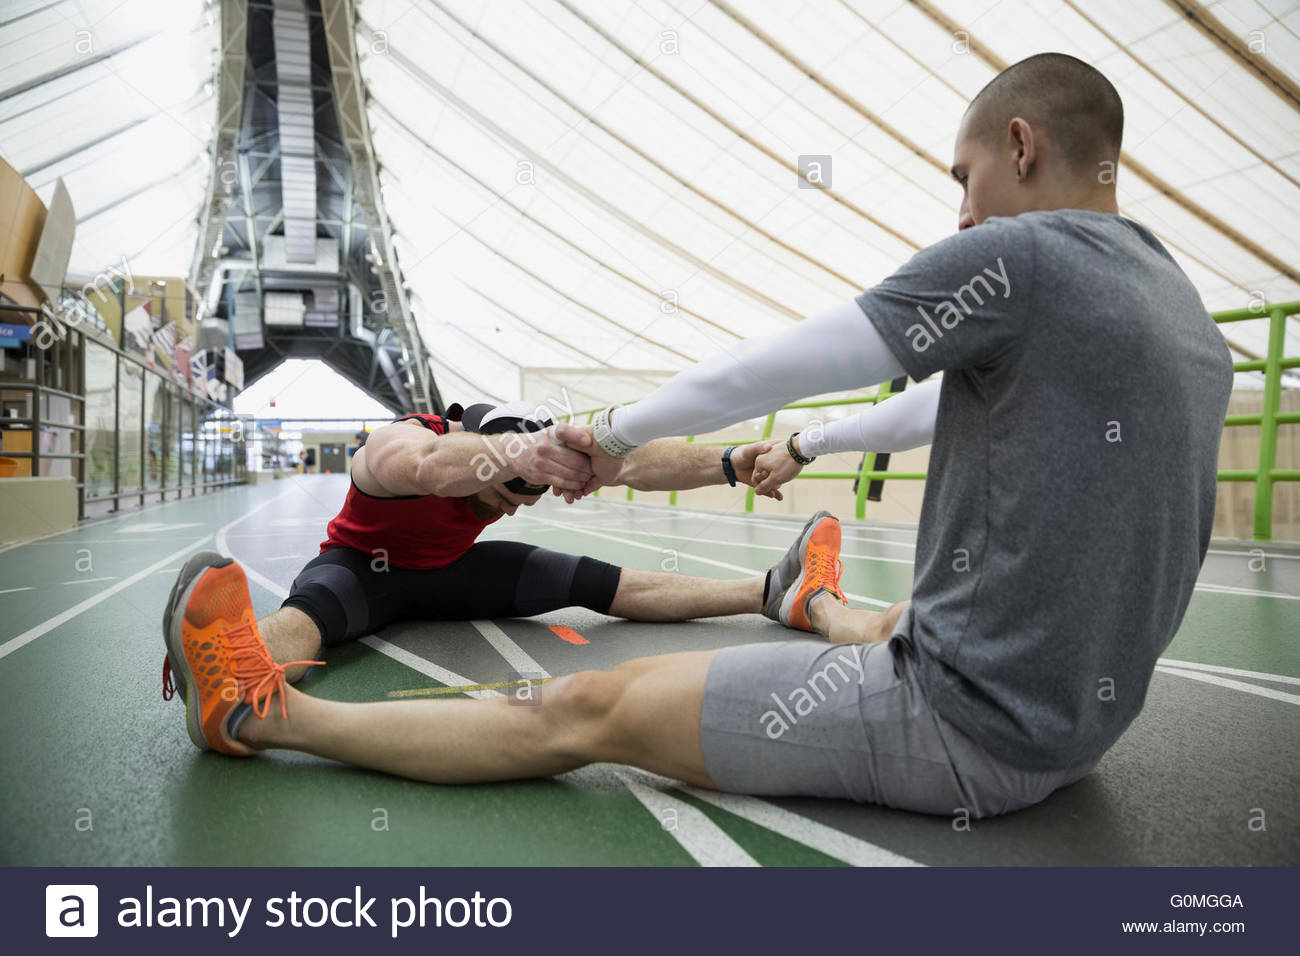 Runners holding hands stretching legs apart indoor track - Stock Image